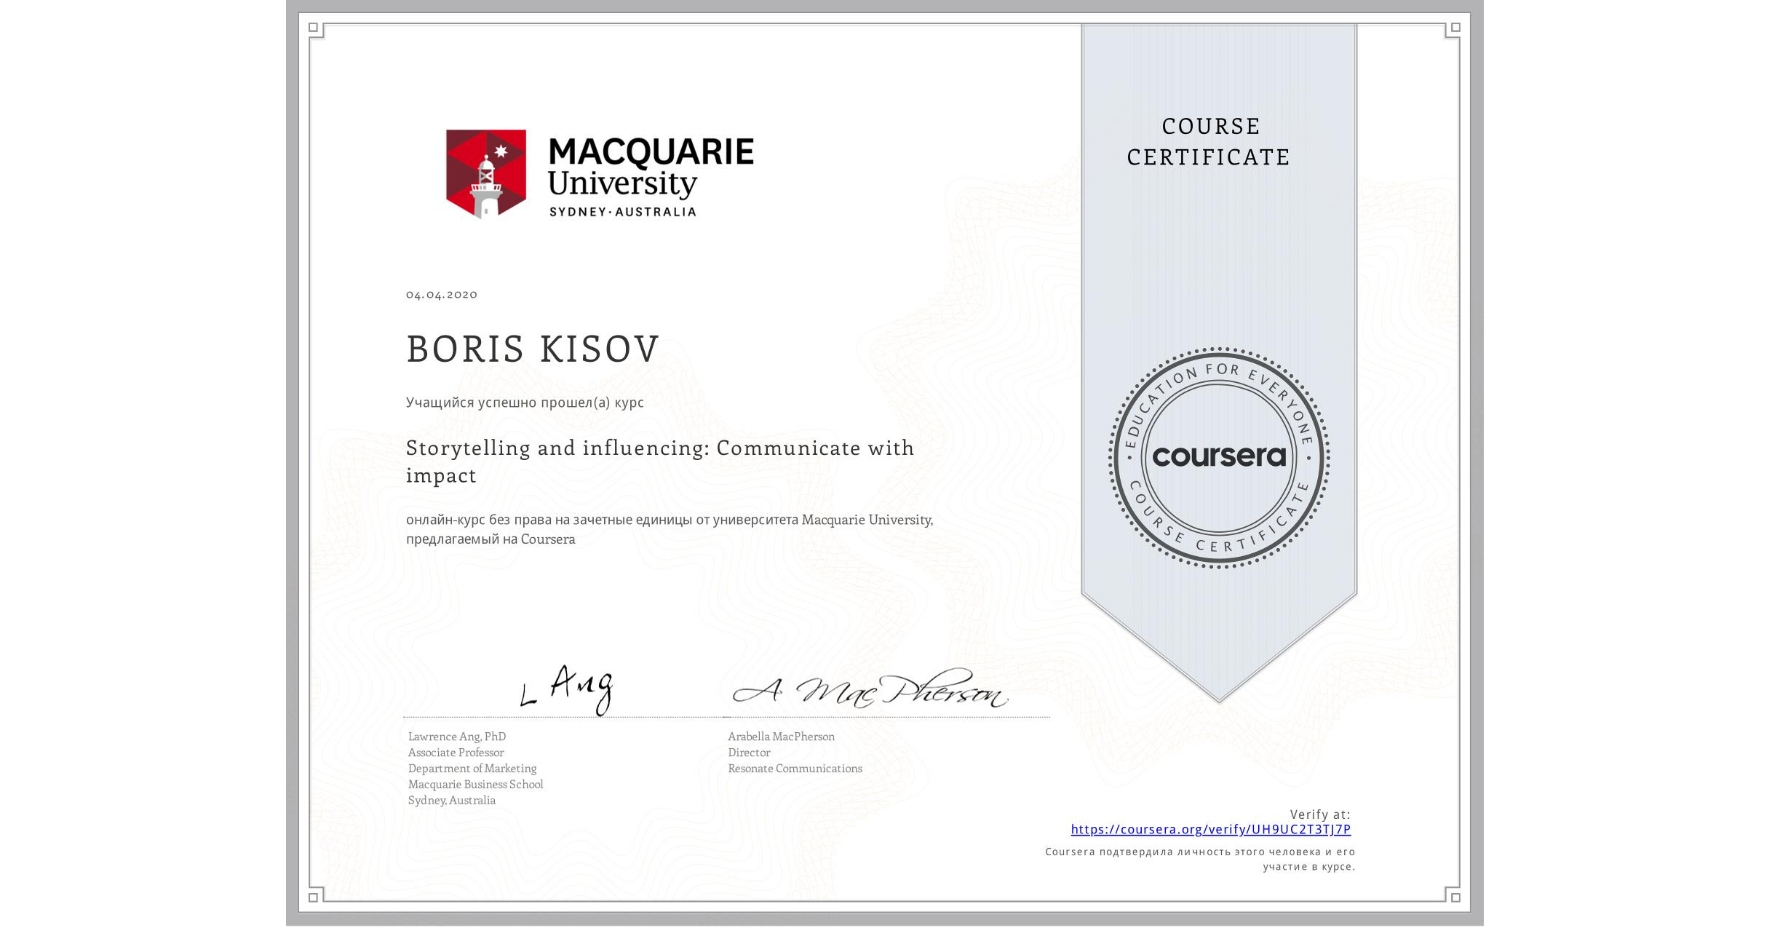 View certificate for BORIS KISOV, Storytelling and influencing: Communicate with impact, an online non-credit course authorized by Macquarie University and offered through Coursera